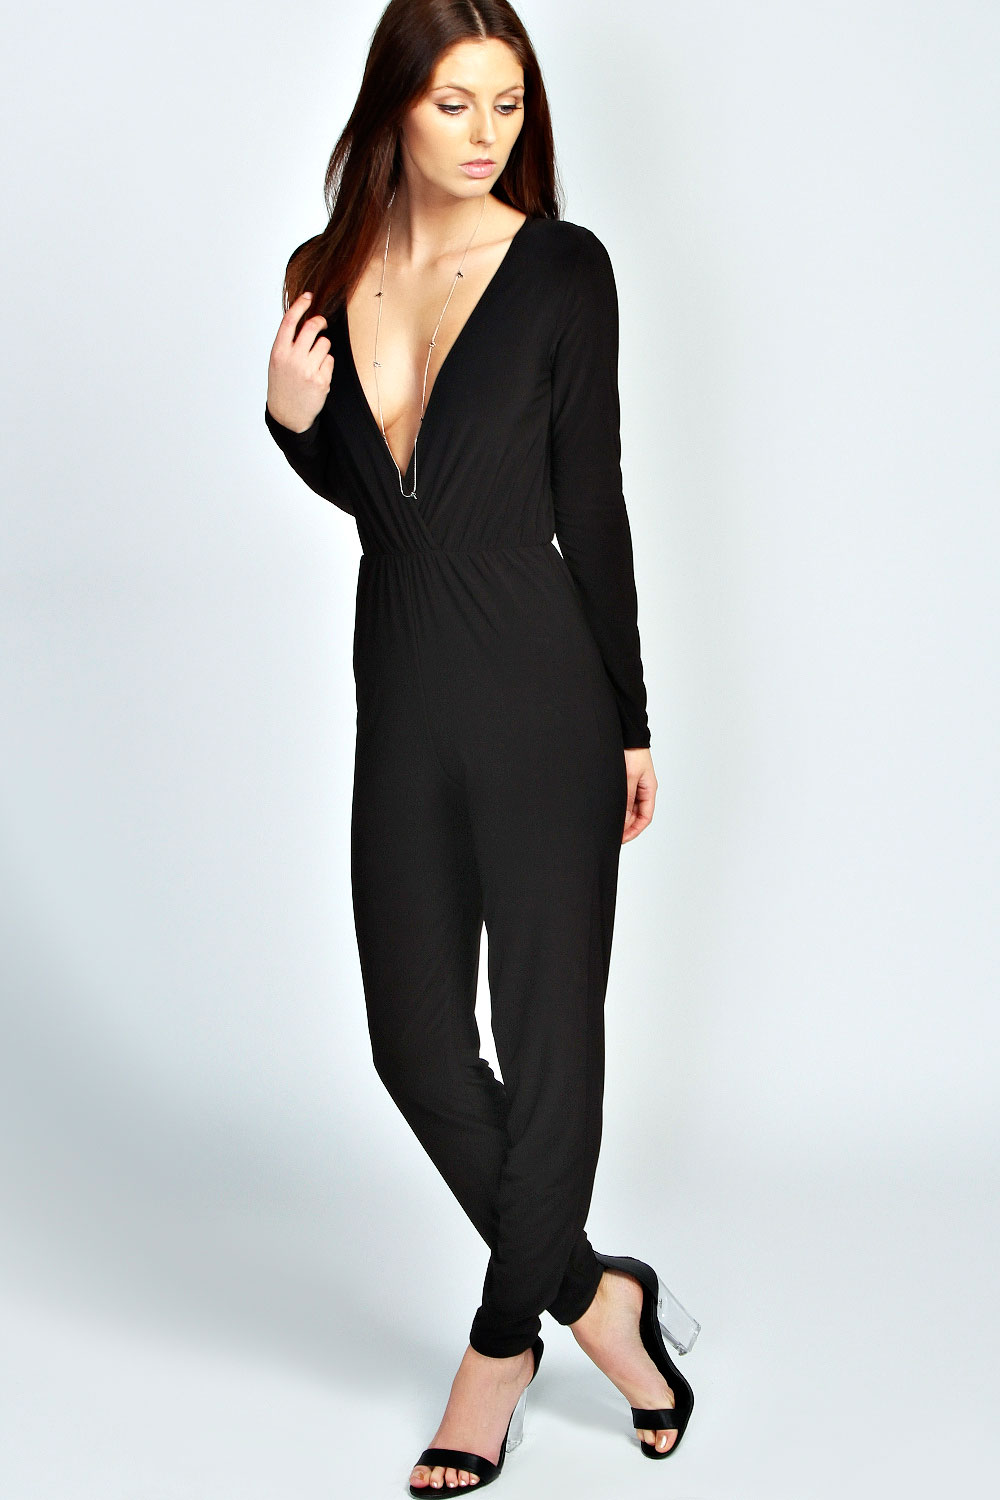 Brilliant For Men And Women, The Velvet Tuxedo  For Dressier Holiday Occasions, Switch To A Long Crushed Velvet Tunic Or Even A Clas